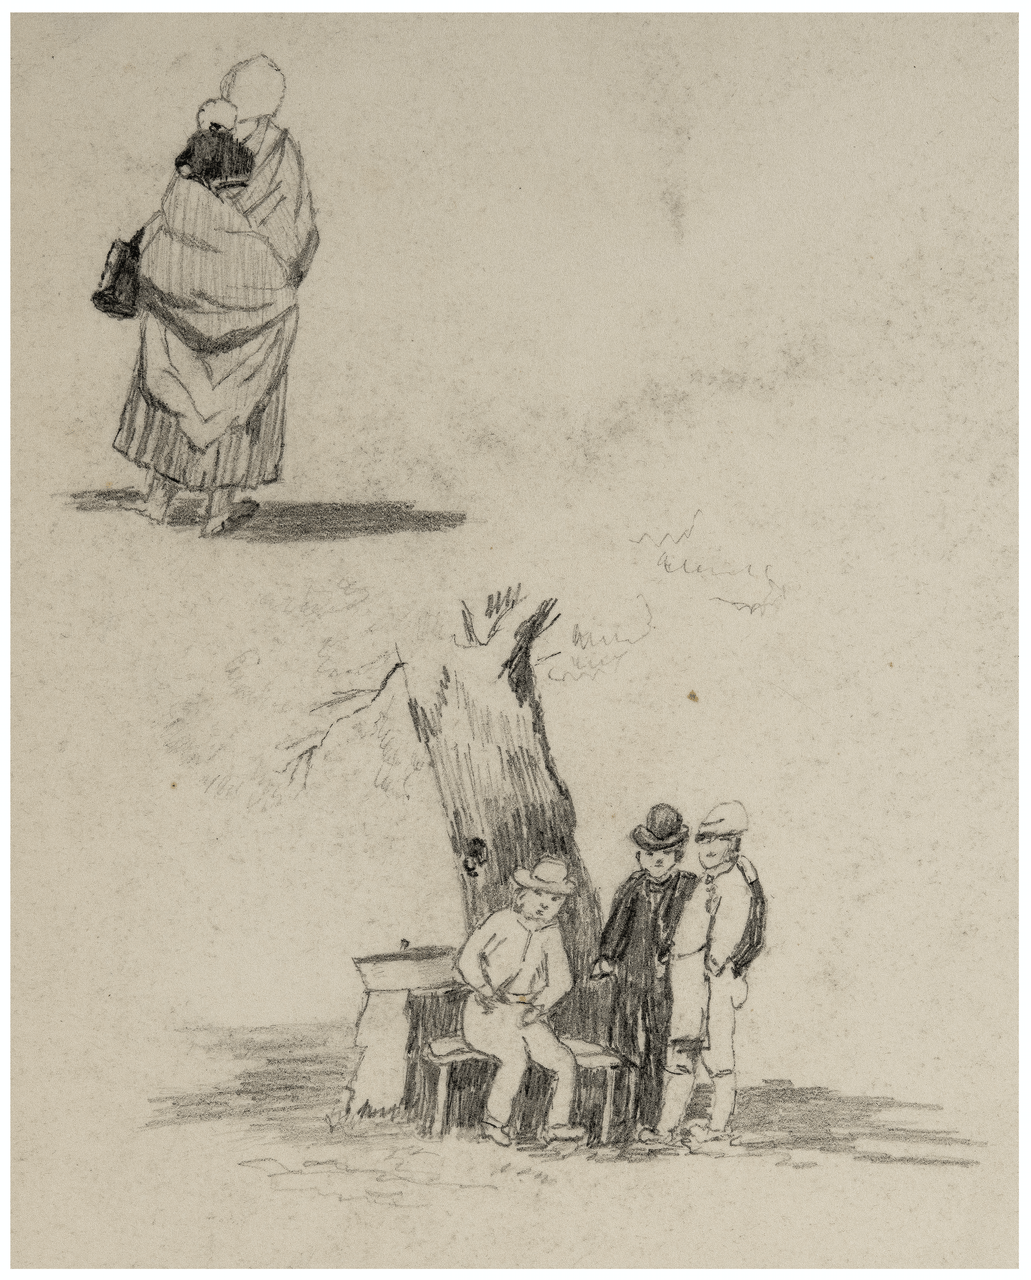 A 19th Century English Sketch of Three Lads